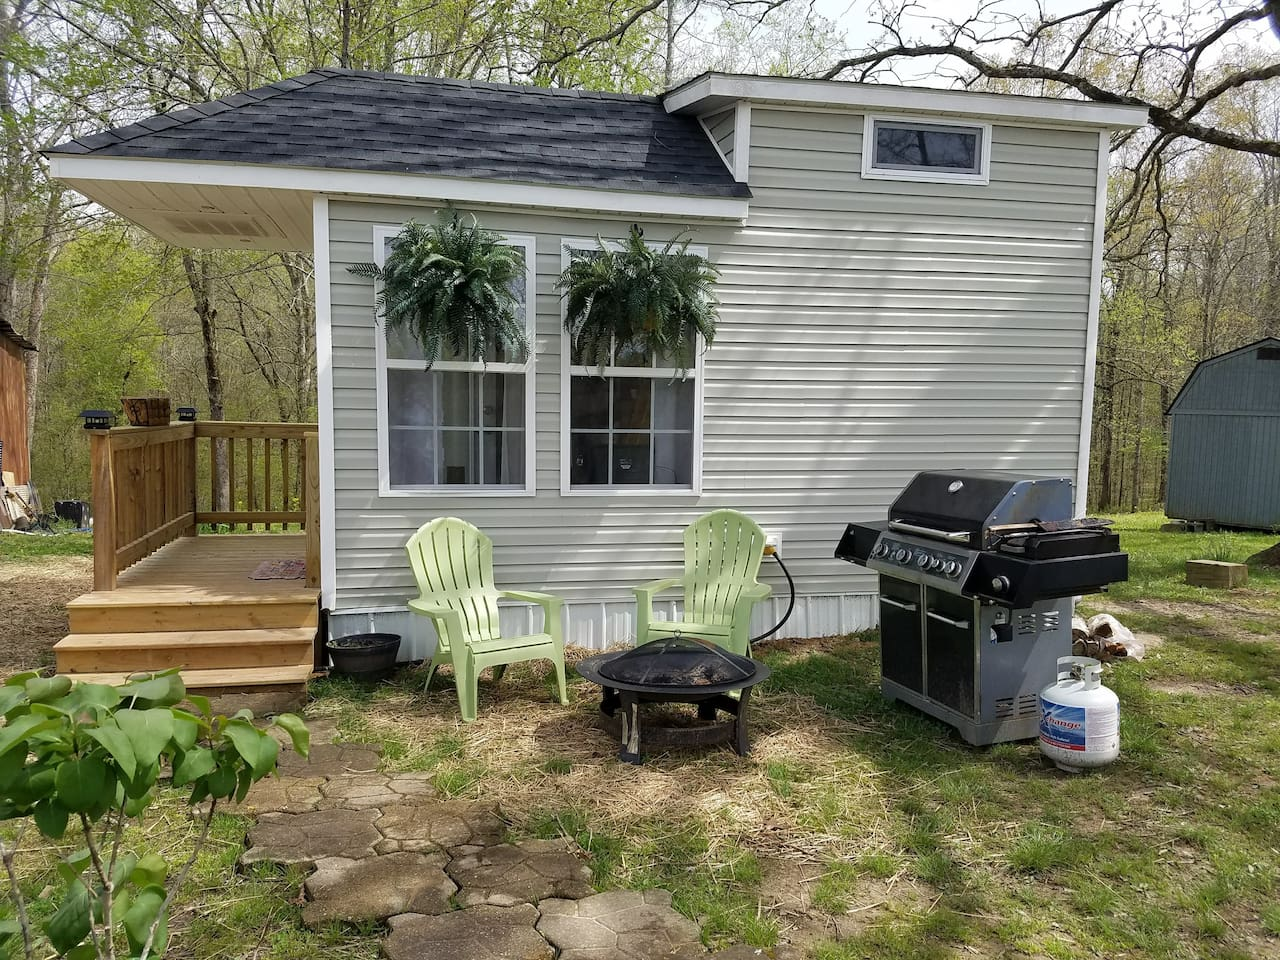 Tiny house @ Land Between the Lakes! Guests are encouraged to use the grill and firepit located outside.